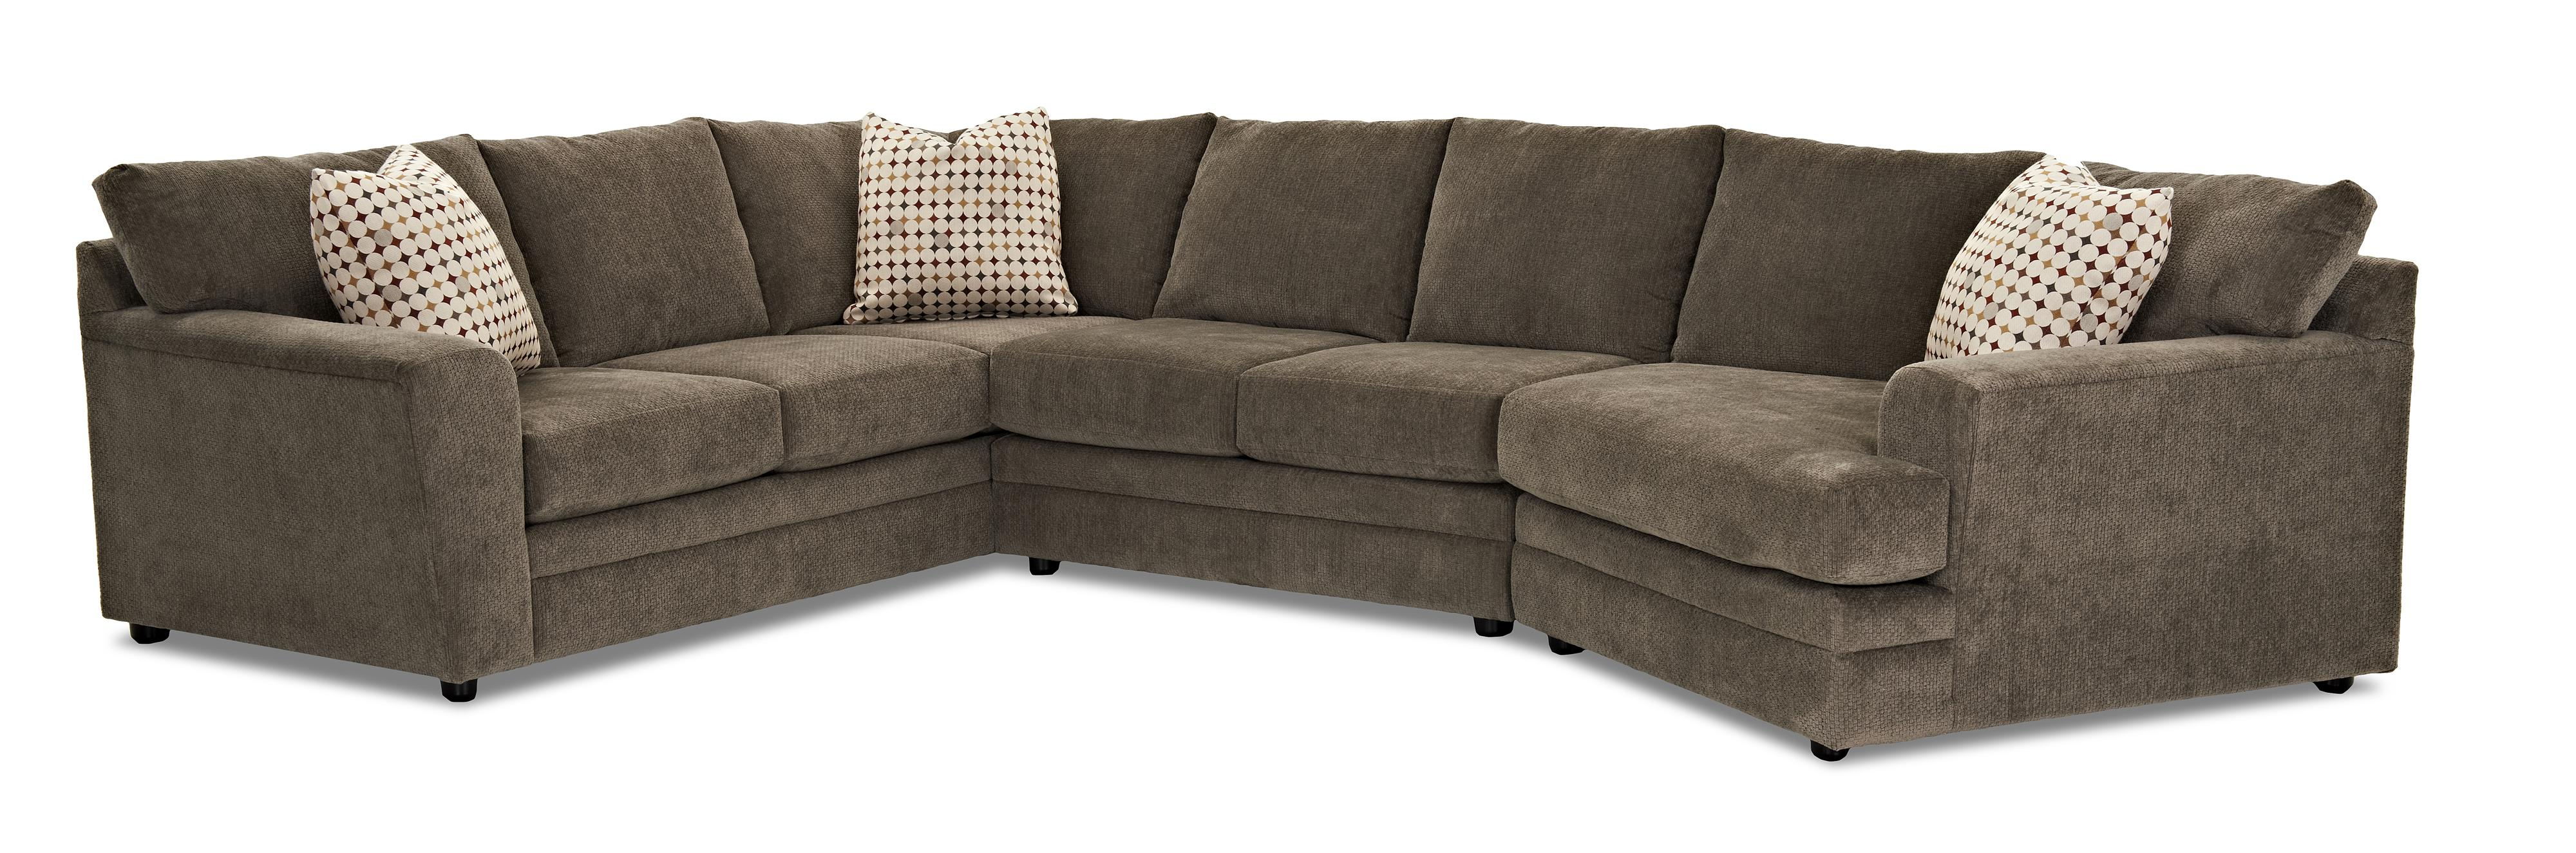 Ashburn Sectional Sofa by Klaussner at Northeast Factory Direct